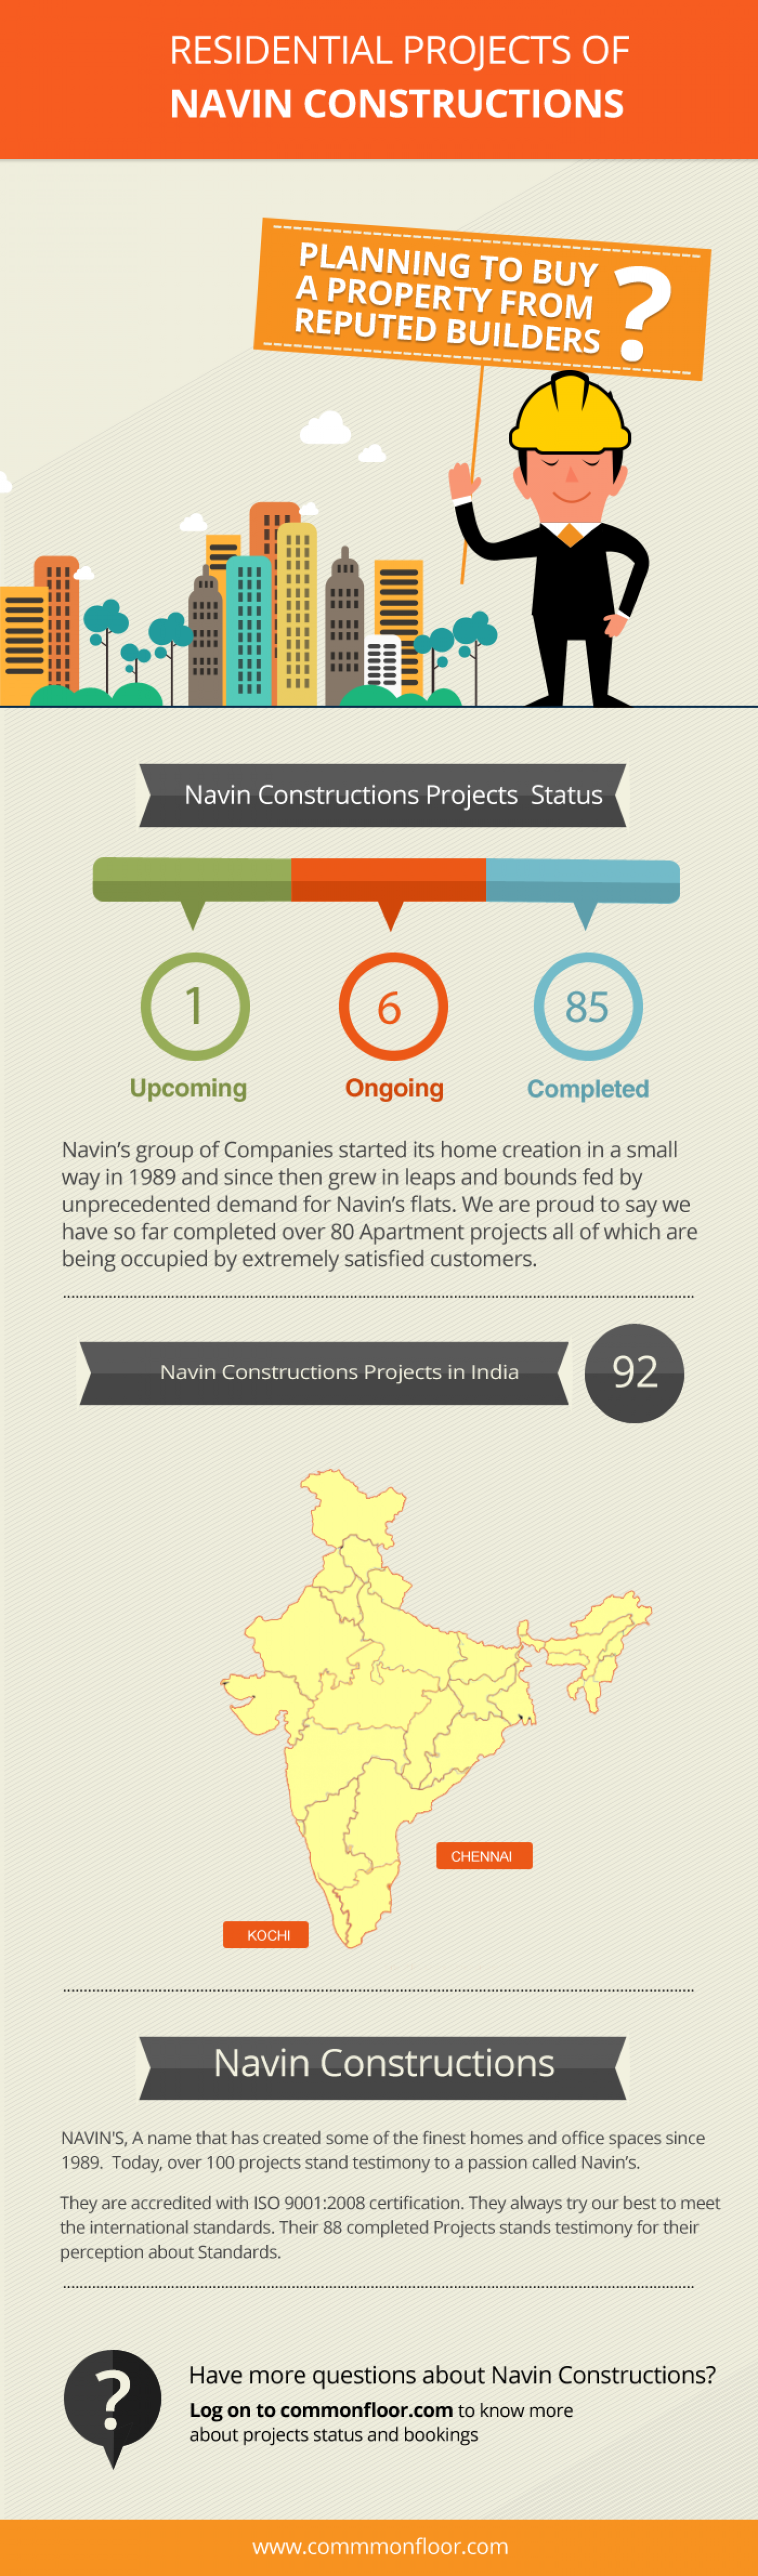 Residential Projects of Navin Constructions Infographic